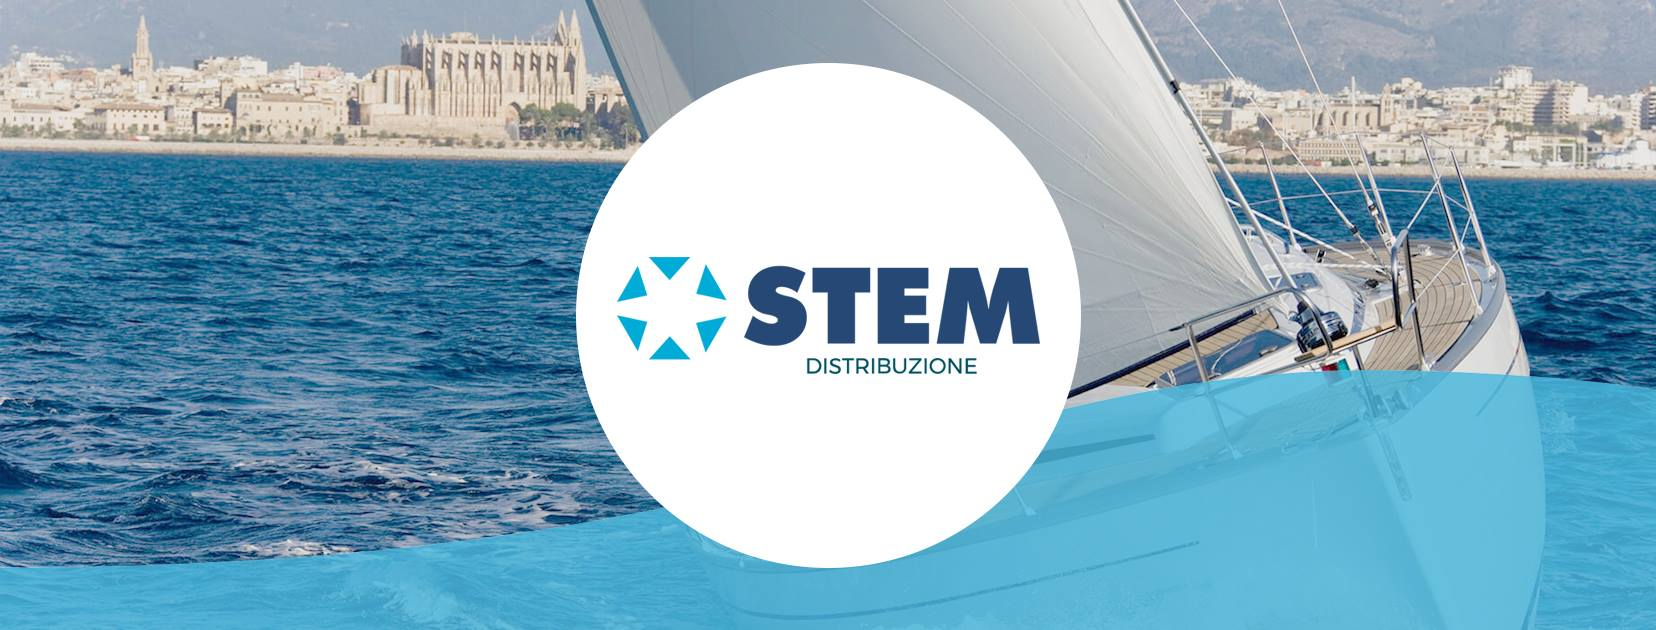 Stem distribuzione - Bcool Engineering